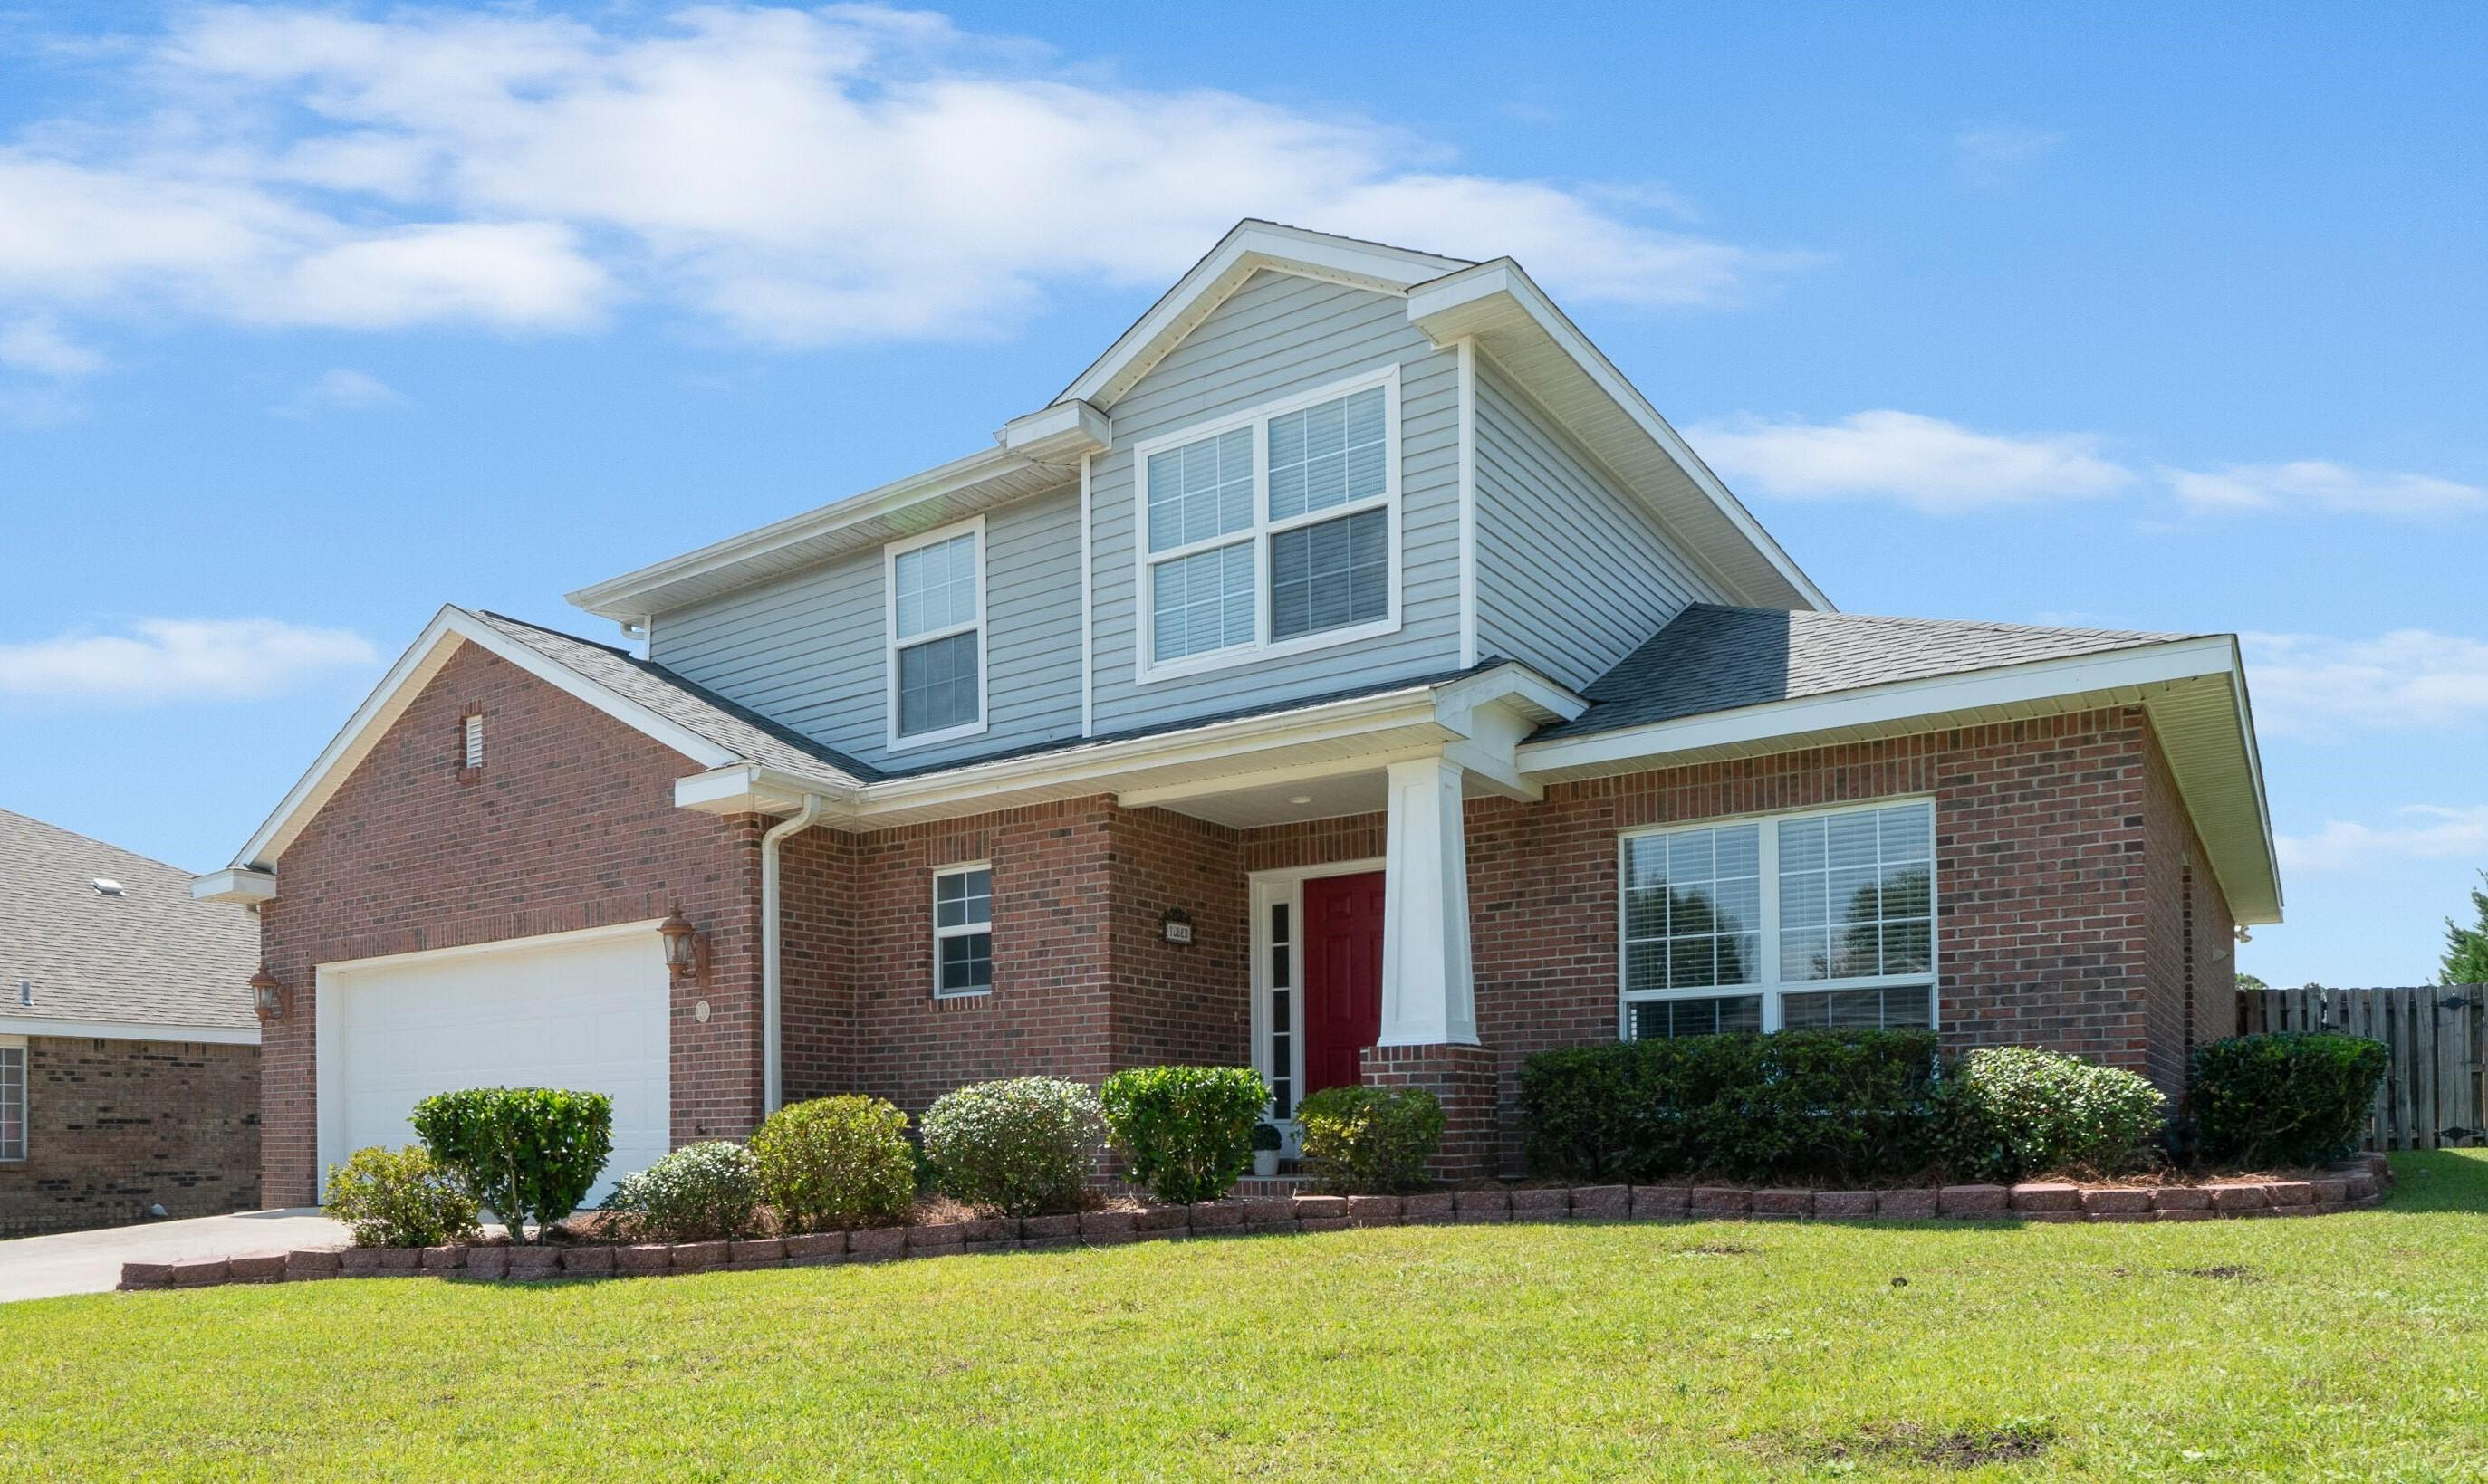 Photo of home for sale at 307 Arbor, Niceville FL